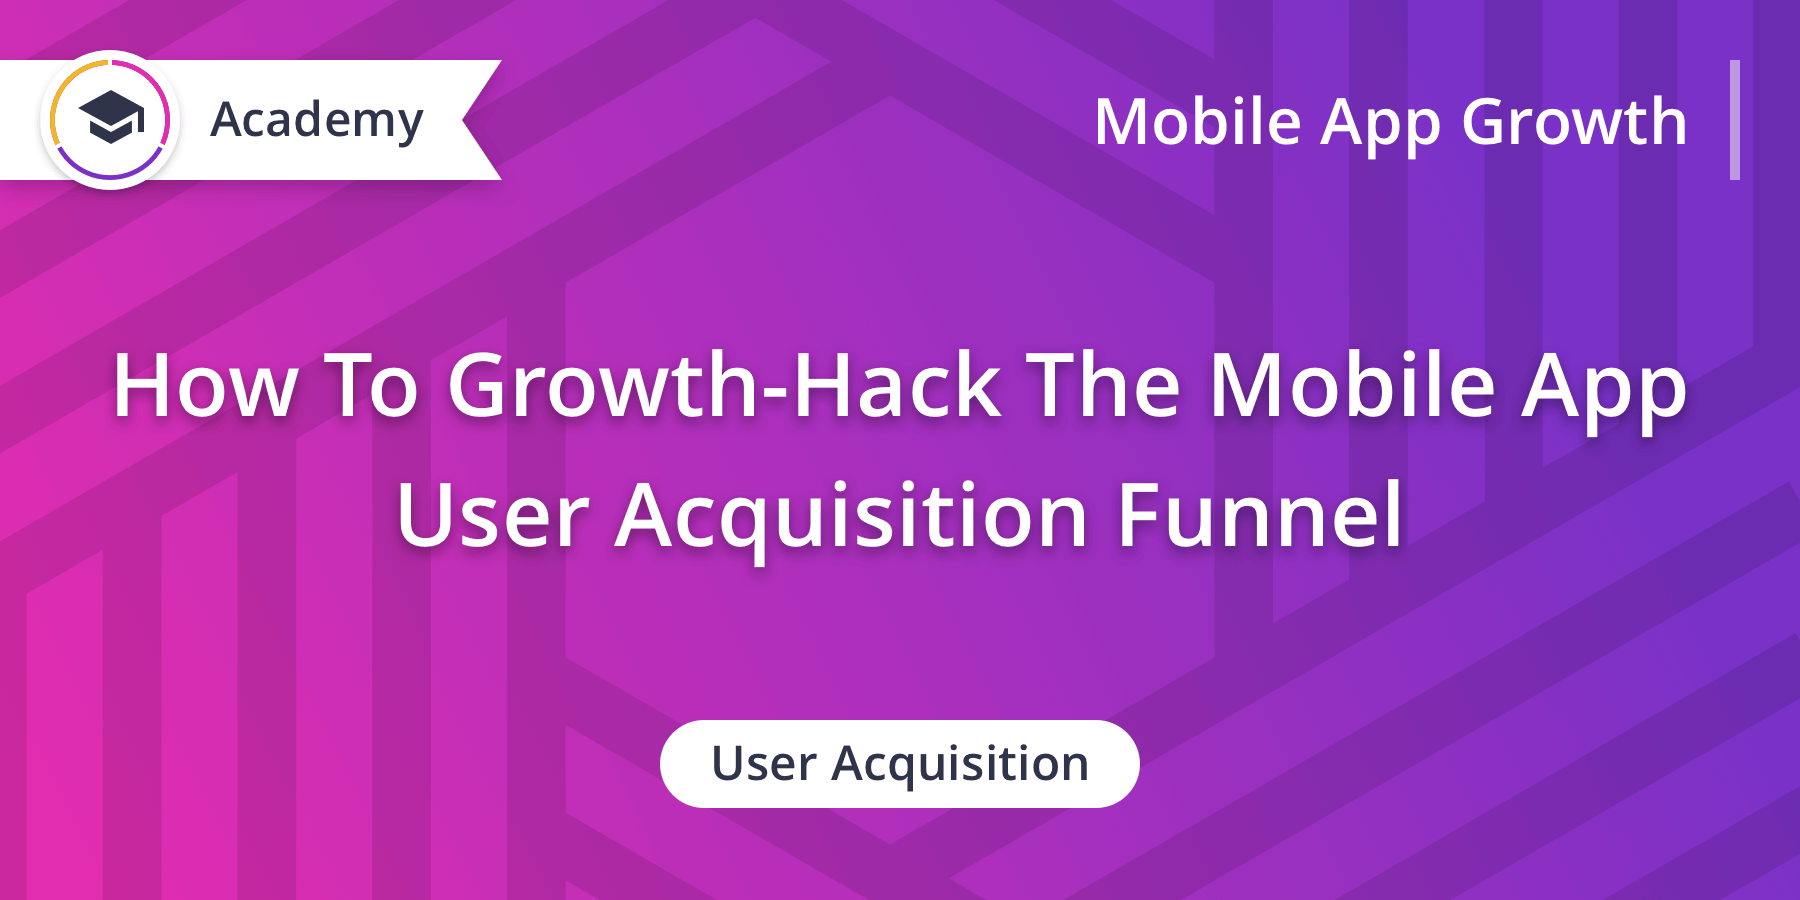 How To Growth-Hack The Mobile App User Acquisition Funnel